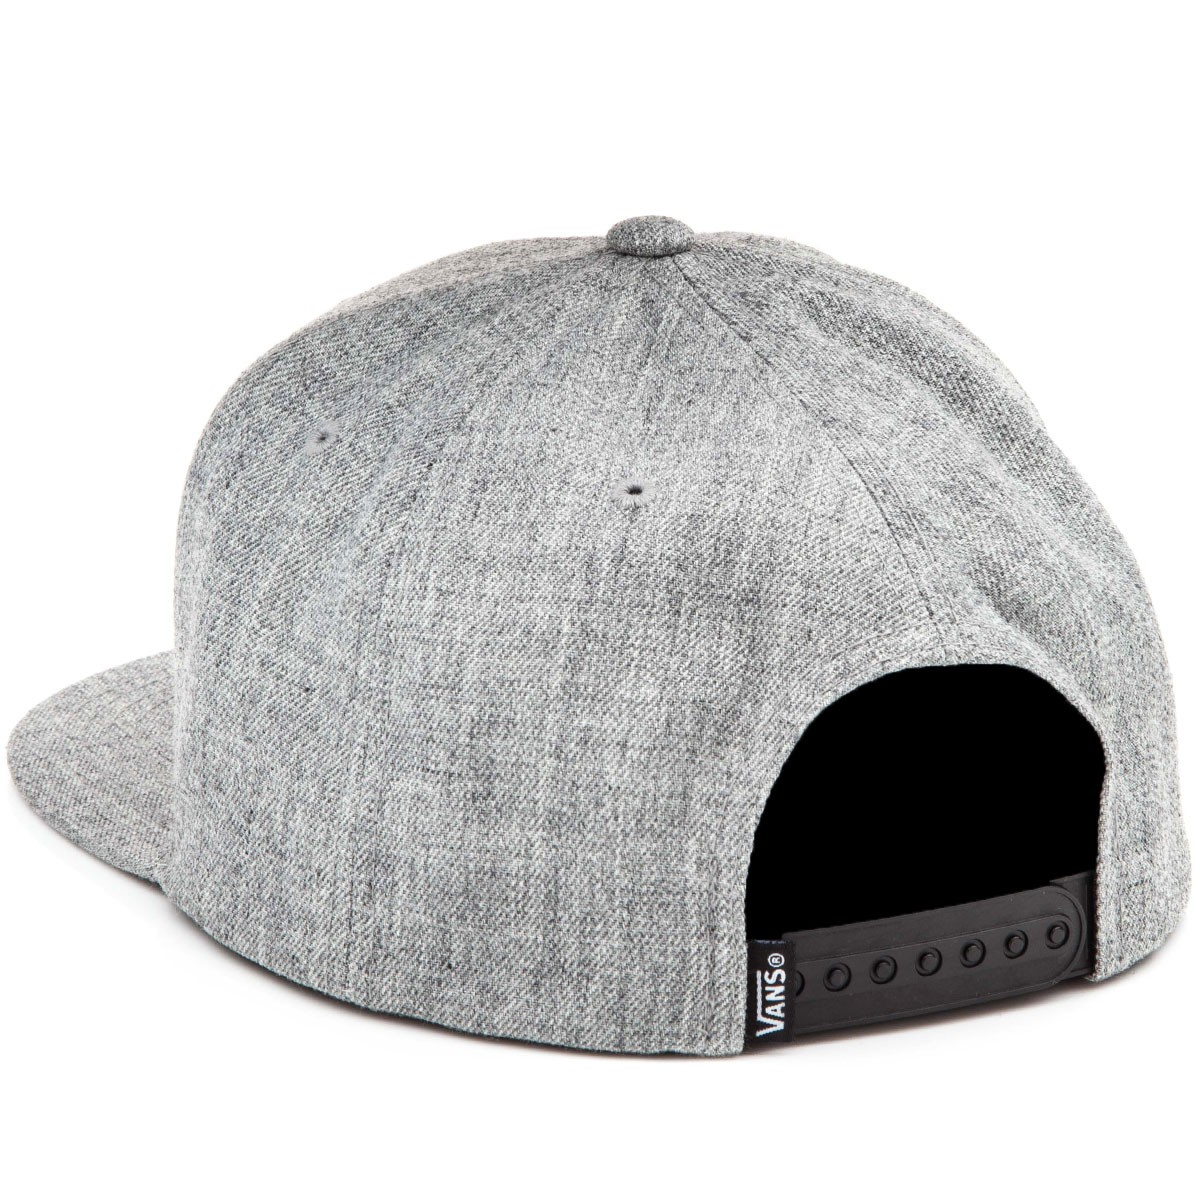 grey vans snapback sale   OFF53% Discounts eb9bfaaf2043